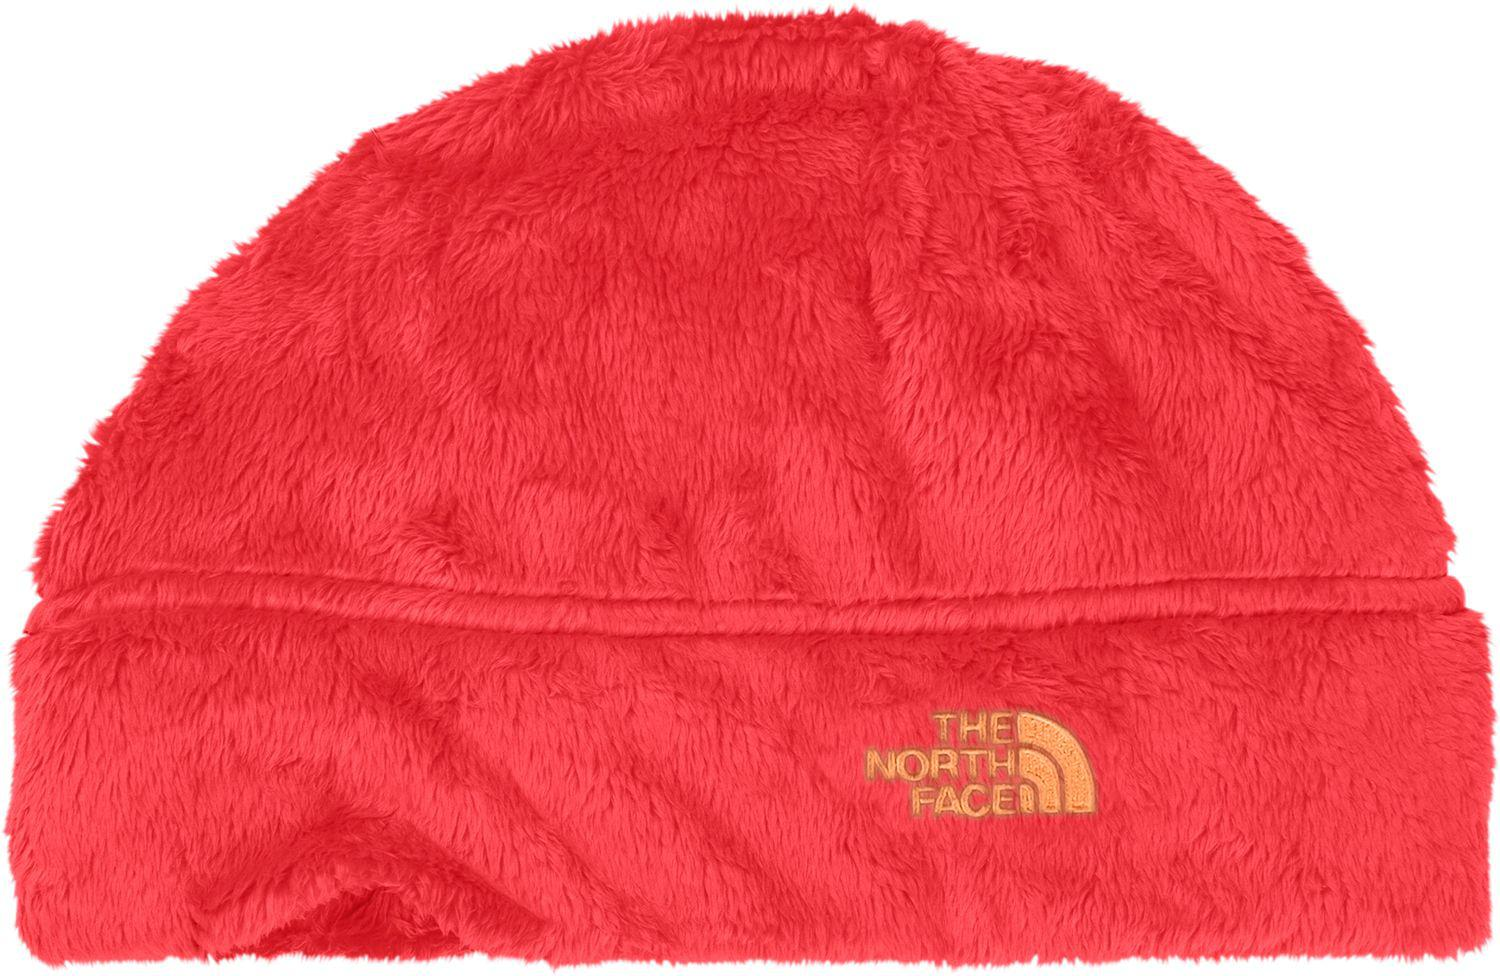 cec56abb87526 Lyst - The North Face Denali Thermal Beanie in Red